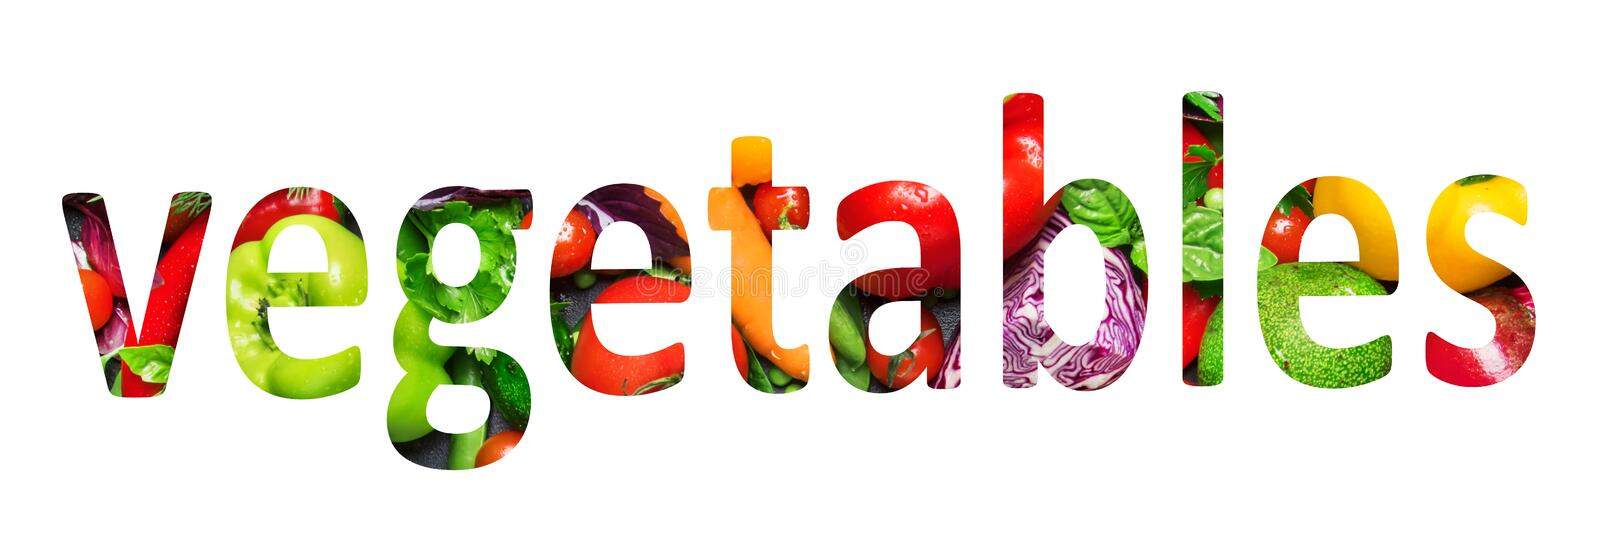 Vegetables, multi-colored text cut out of vegetables photo, the inscription on white background. Vegetables, multi-colored text cut out of vegetables photo, the stock illustration